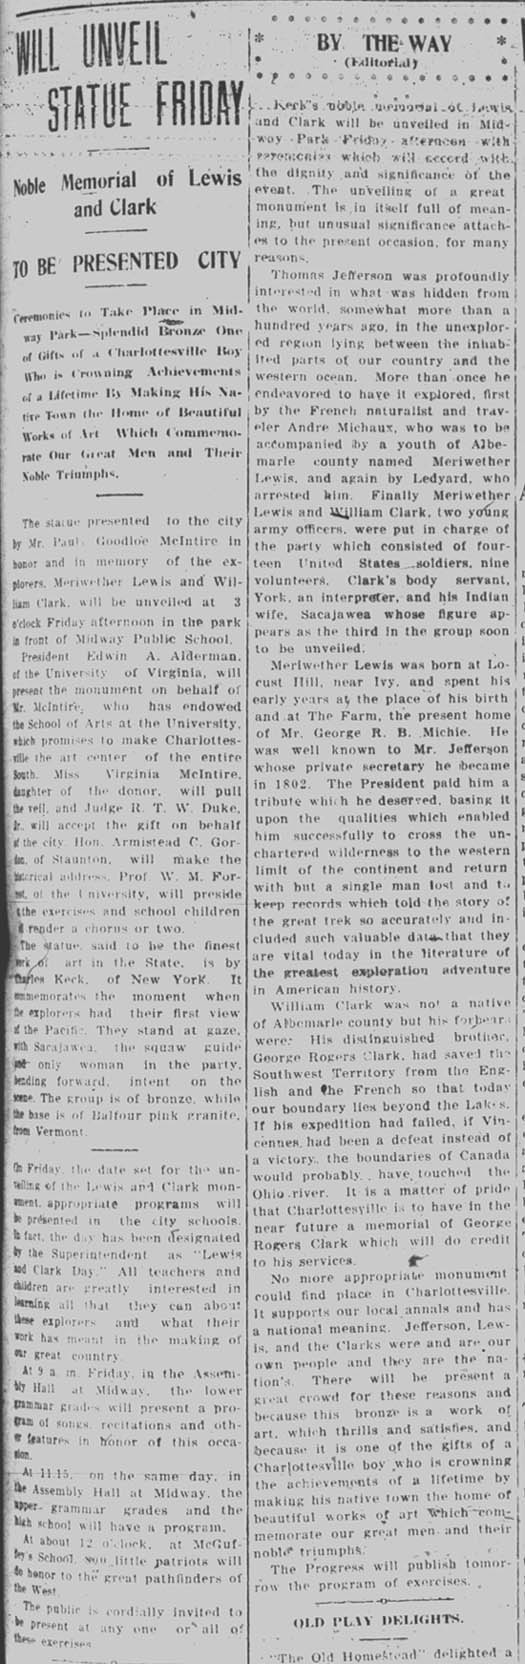 November 19, 1919 Daily Progress article on statue unveiling information. Courtesy of the Virginia Center for Digital History at the University of Virginian.